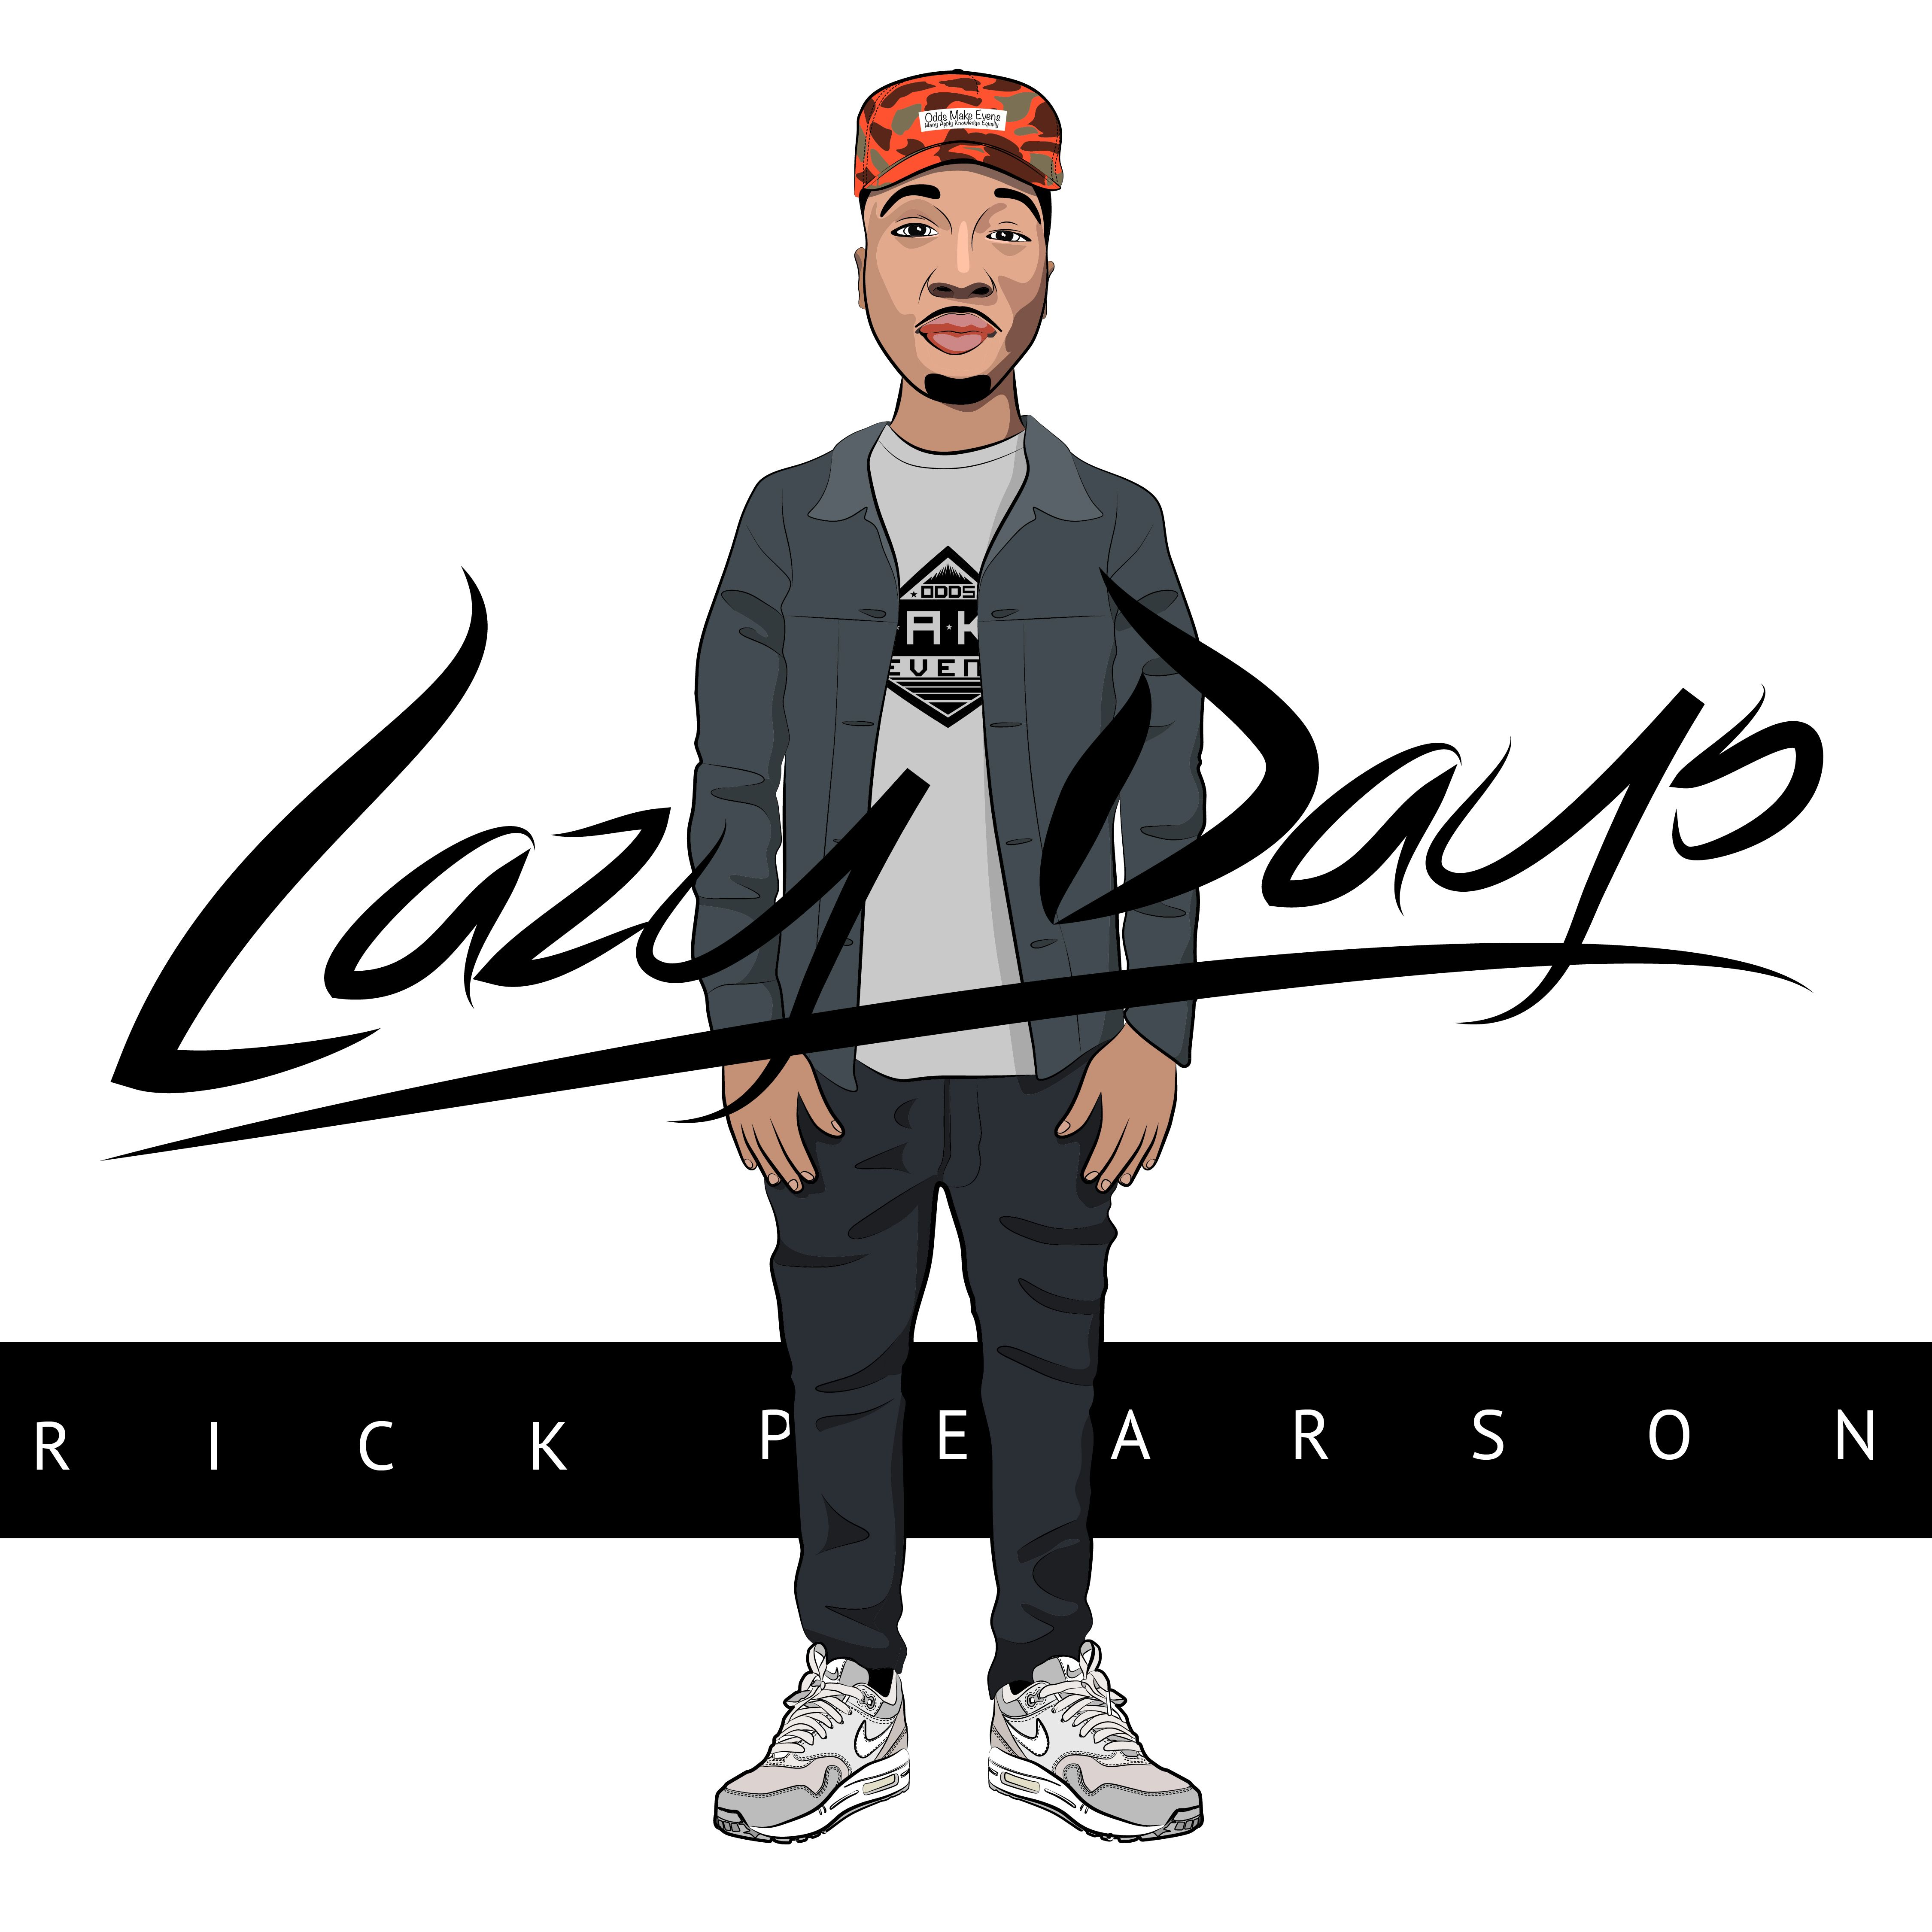 """I've been making music for a while being a songwriter and writing songs for myself and decided to release a mixtape named """"Lazy Days"""" releasing March 10, 2014 to give people a formal introduction to who Rick Pearson is."""